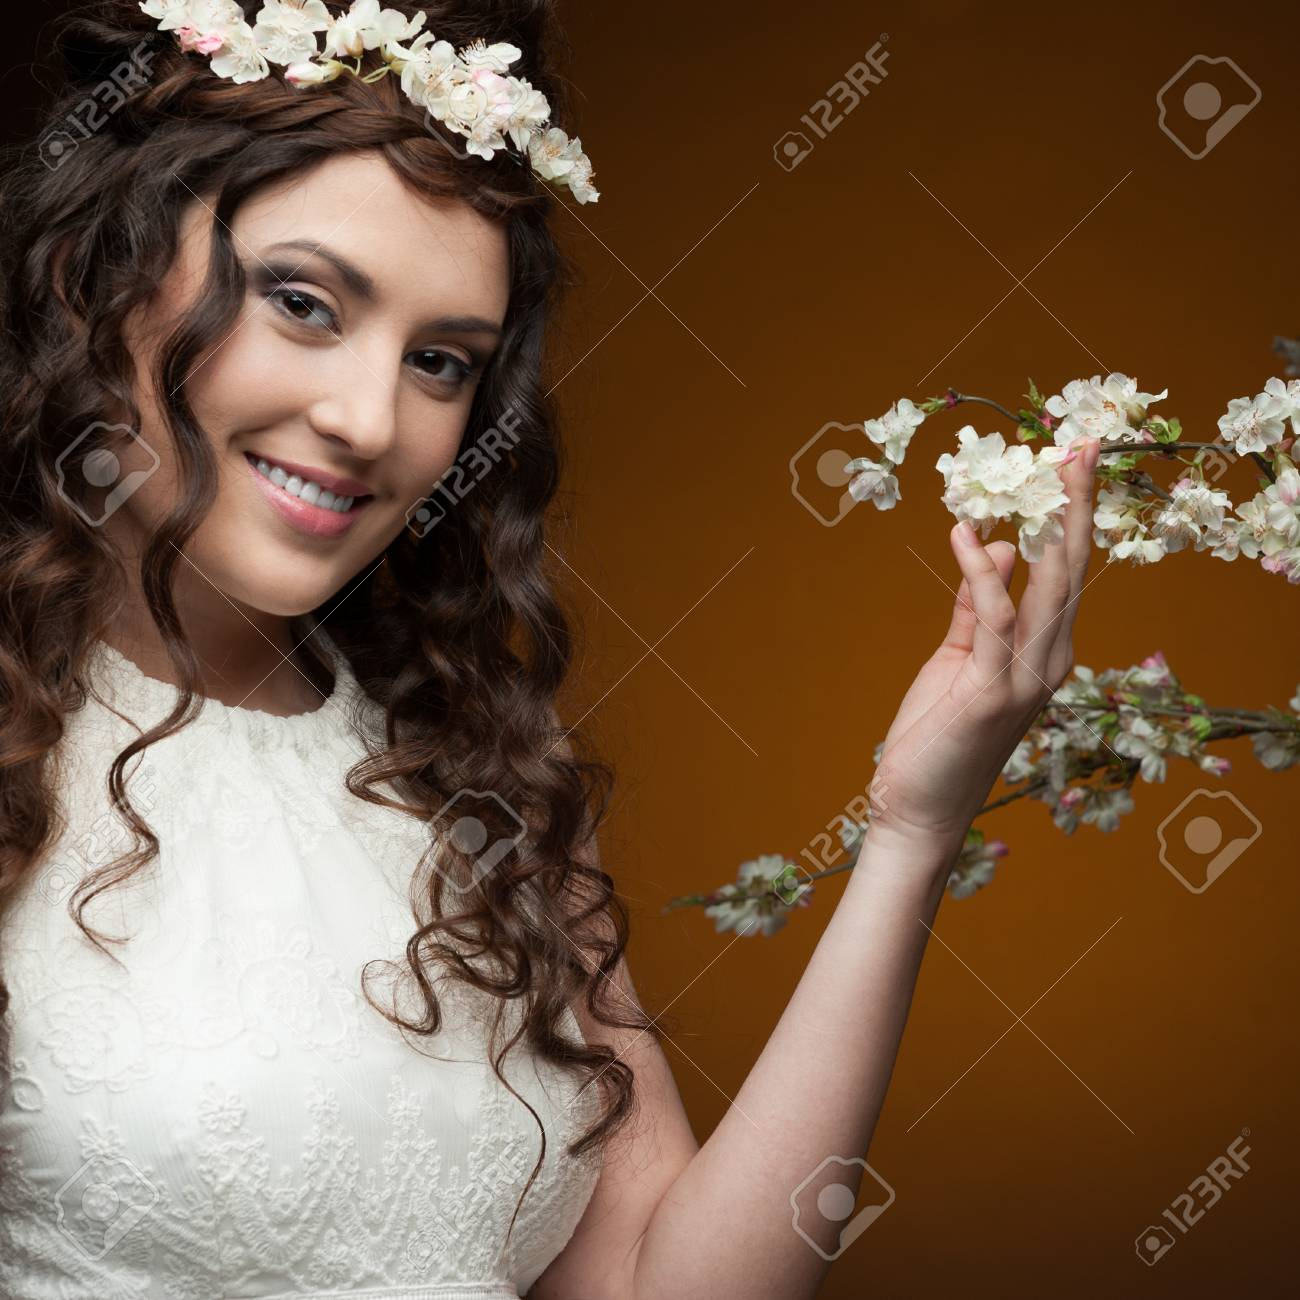 Young Smiling Brunette Woman In Long White Dress And Flowers Stock